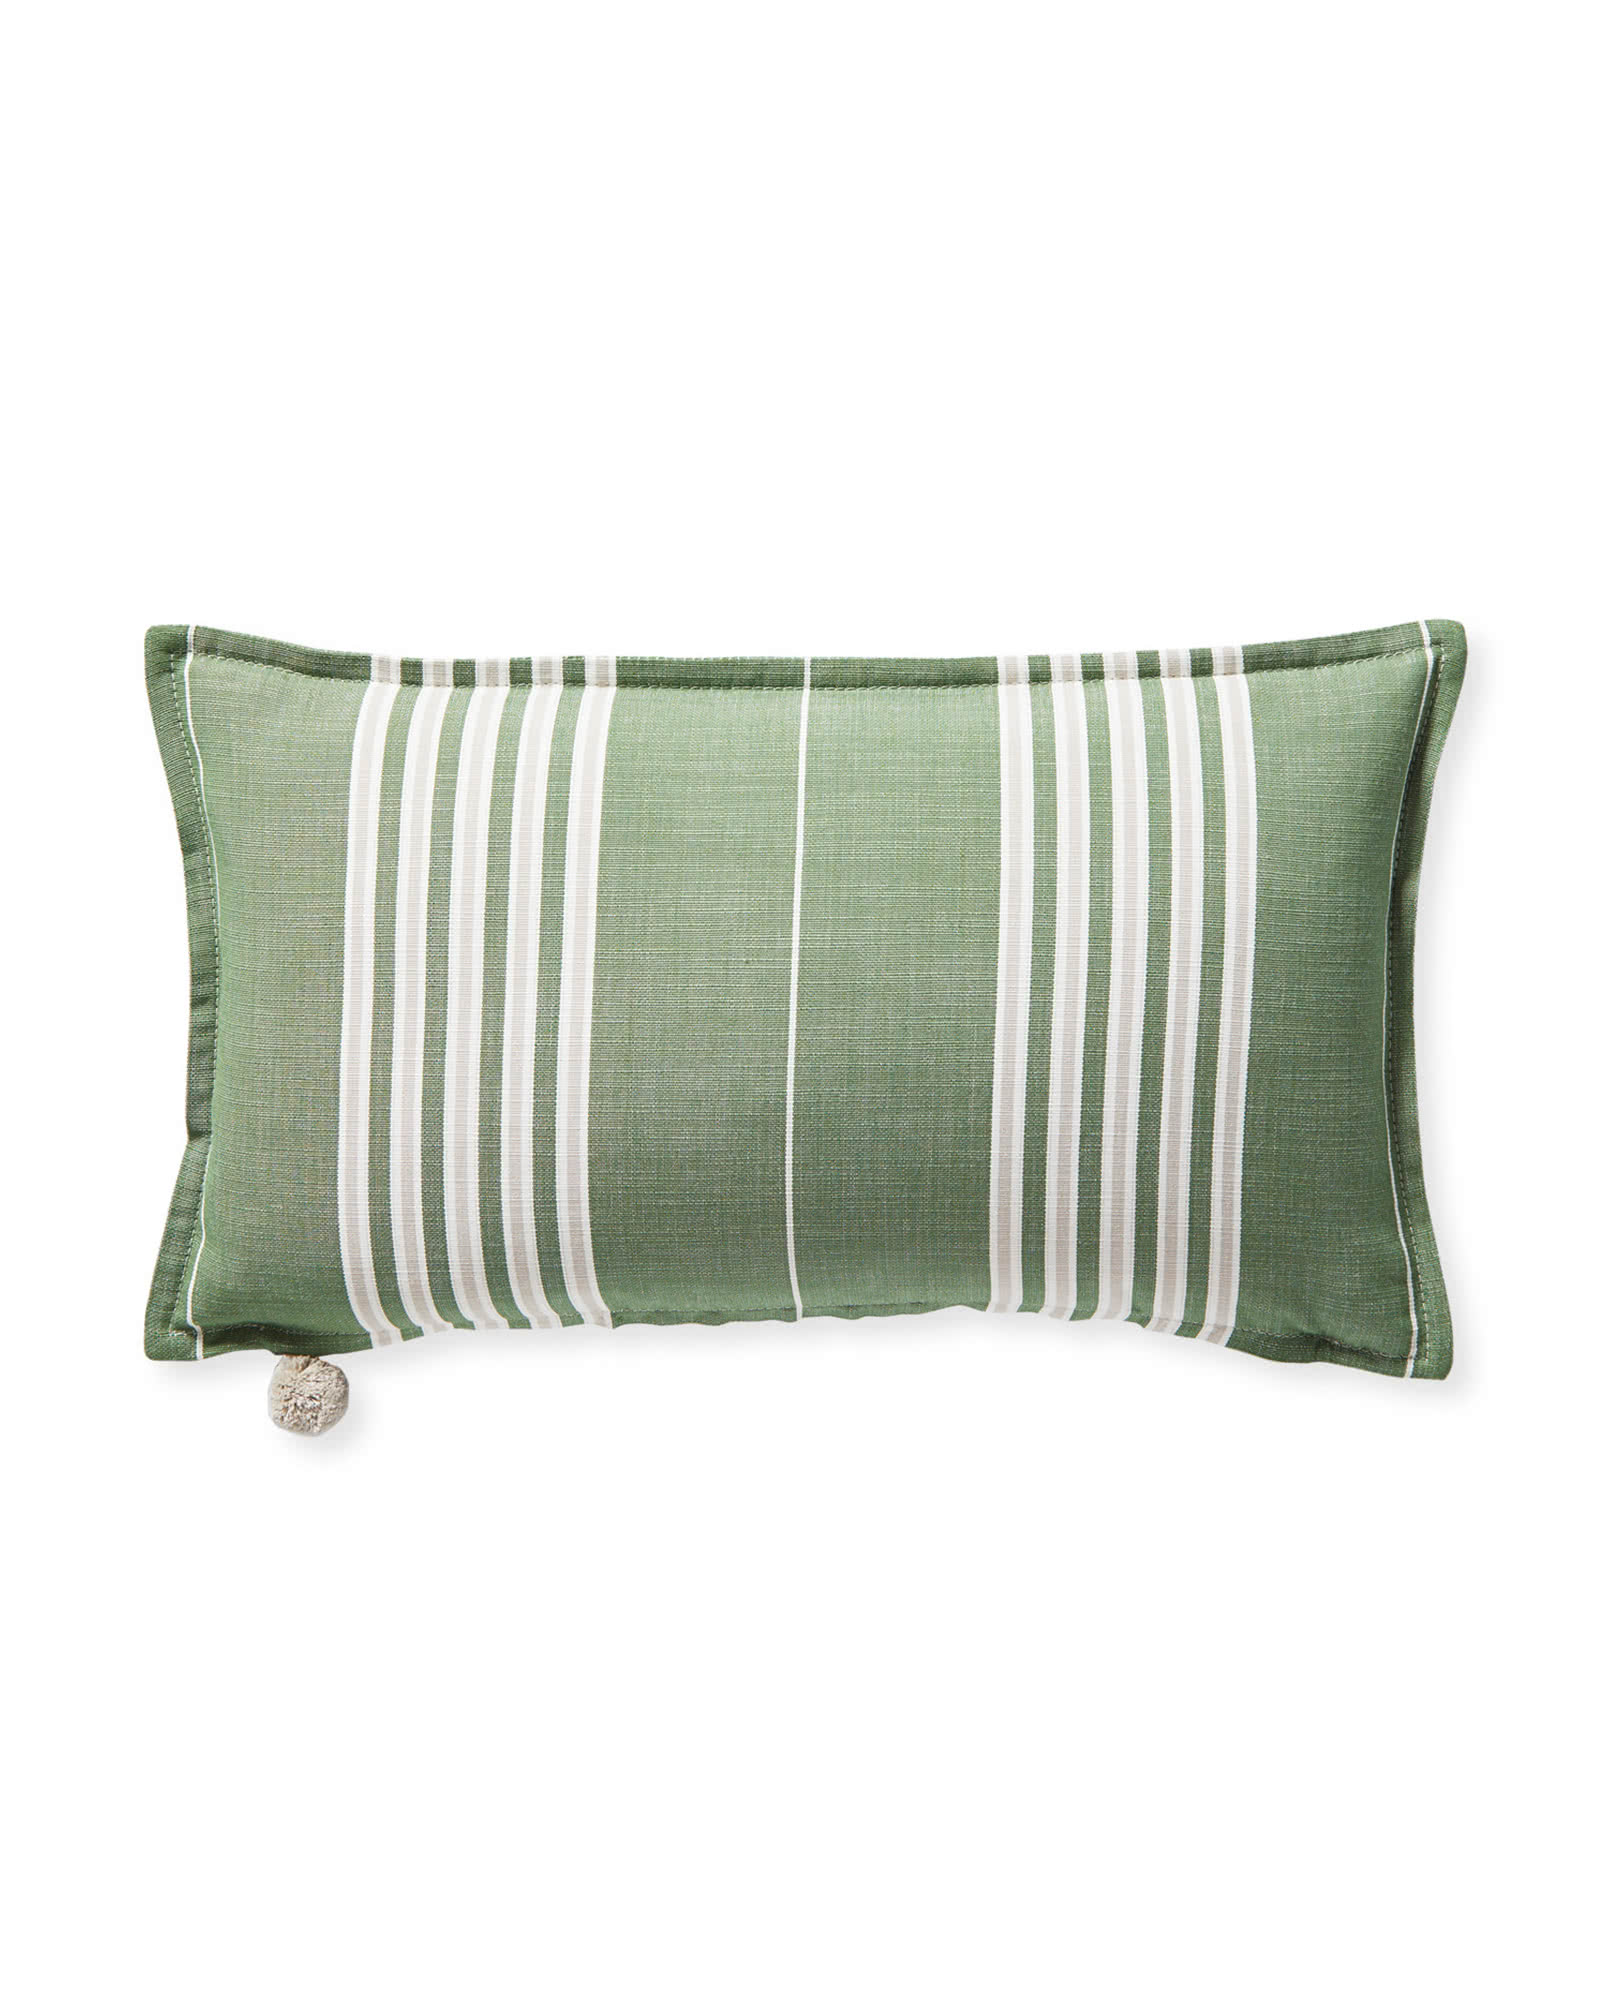 Perennials® Lake Stripe Pillow Cover, Green